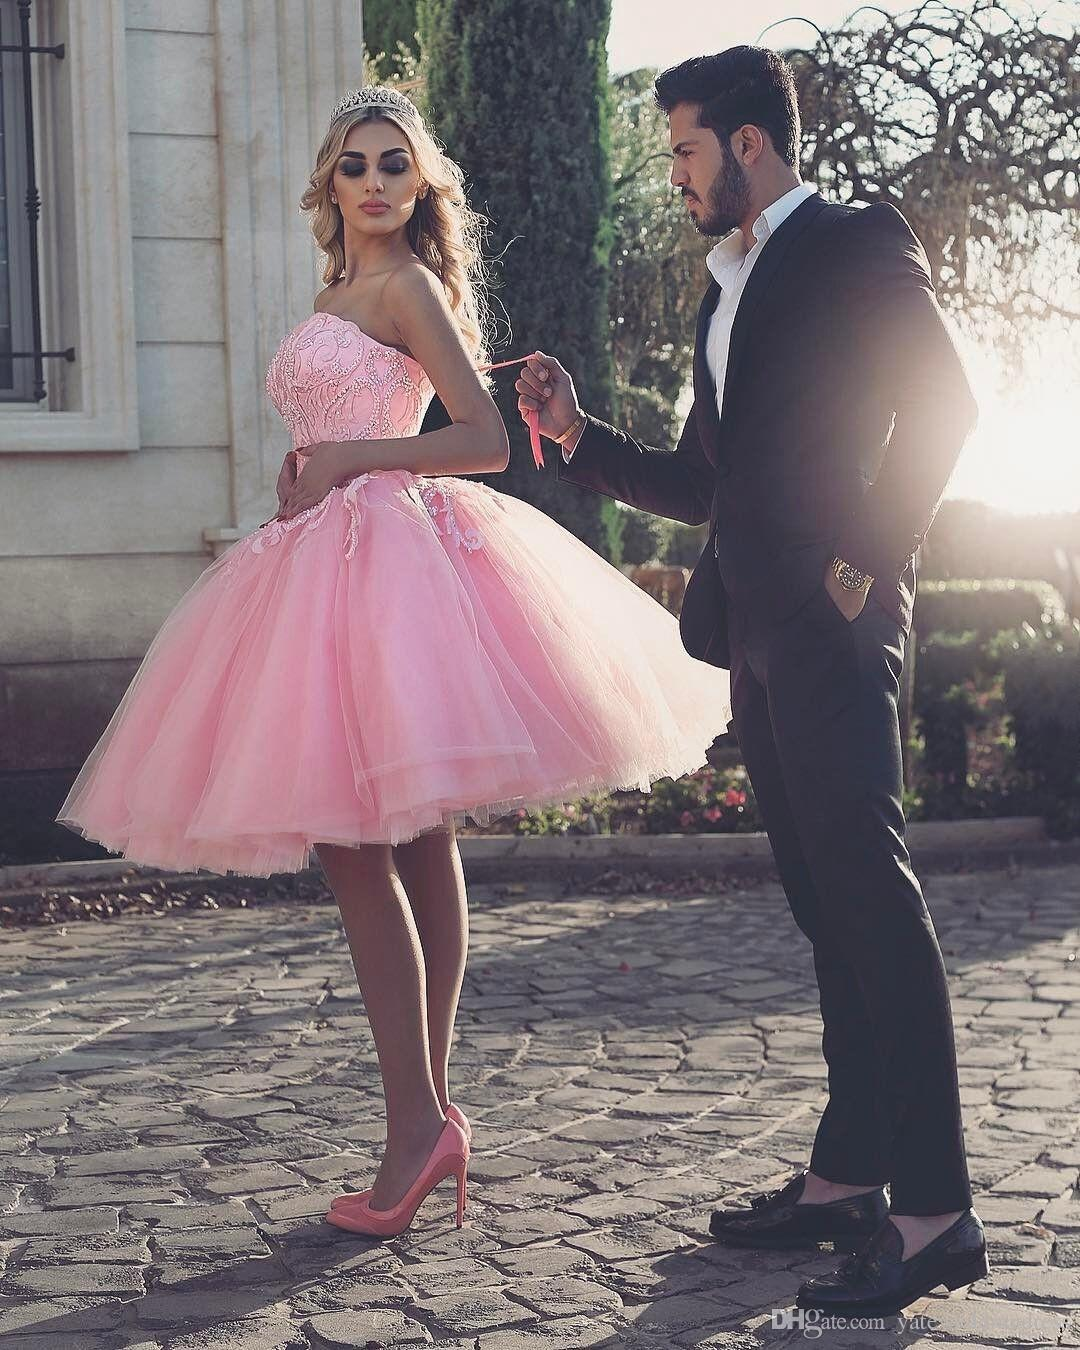 Said Mhamad Elegant Pink Homecoming Dresses Strapless Sleeveless Prom Dresses With Lace Applique Tiered Knee-Length Custom Made Party Gowns